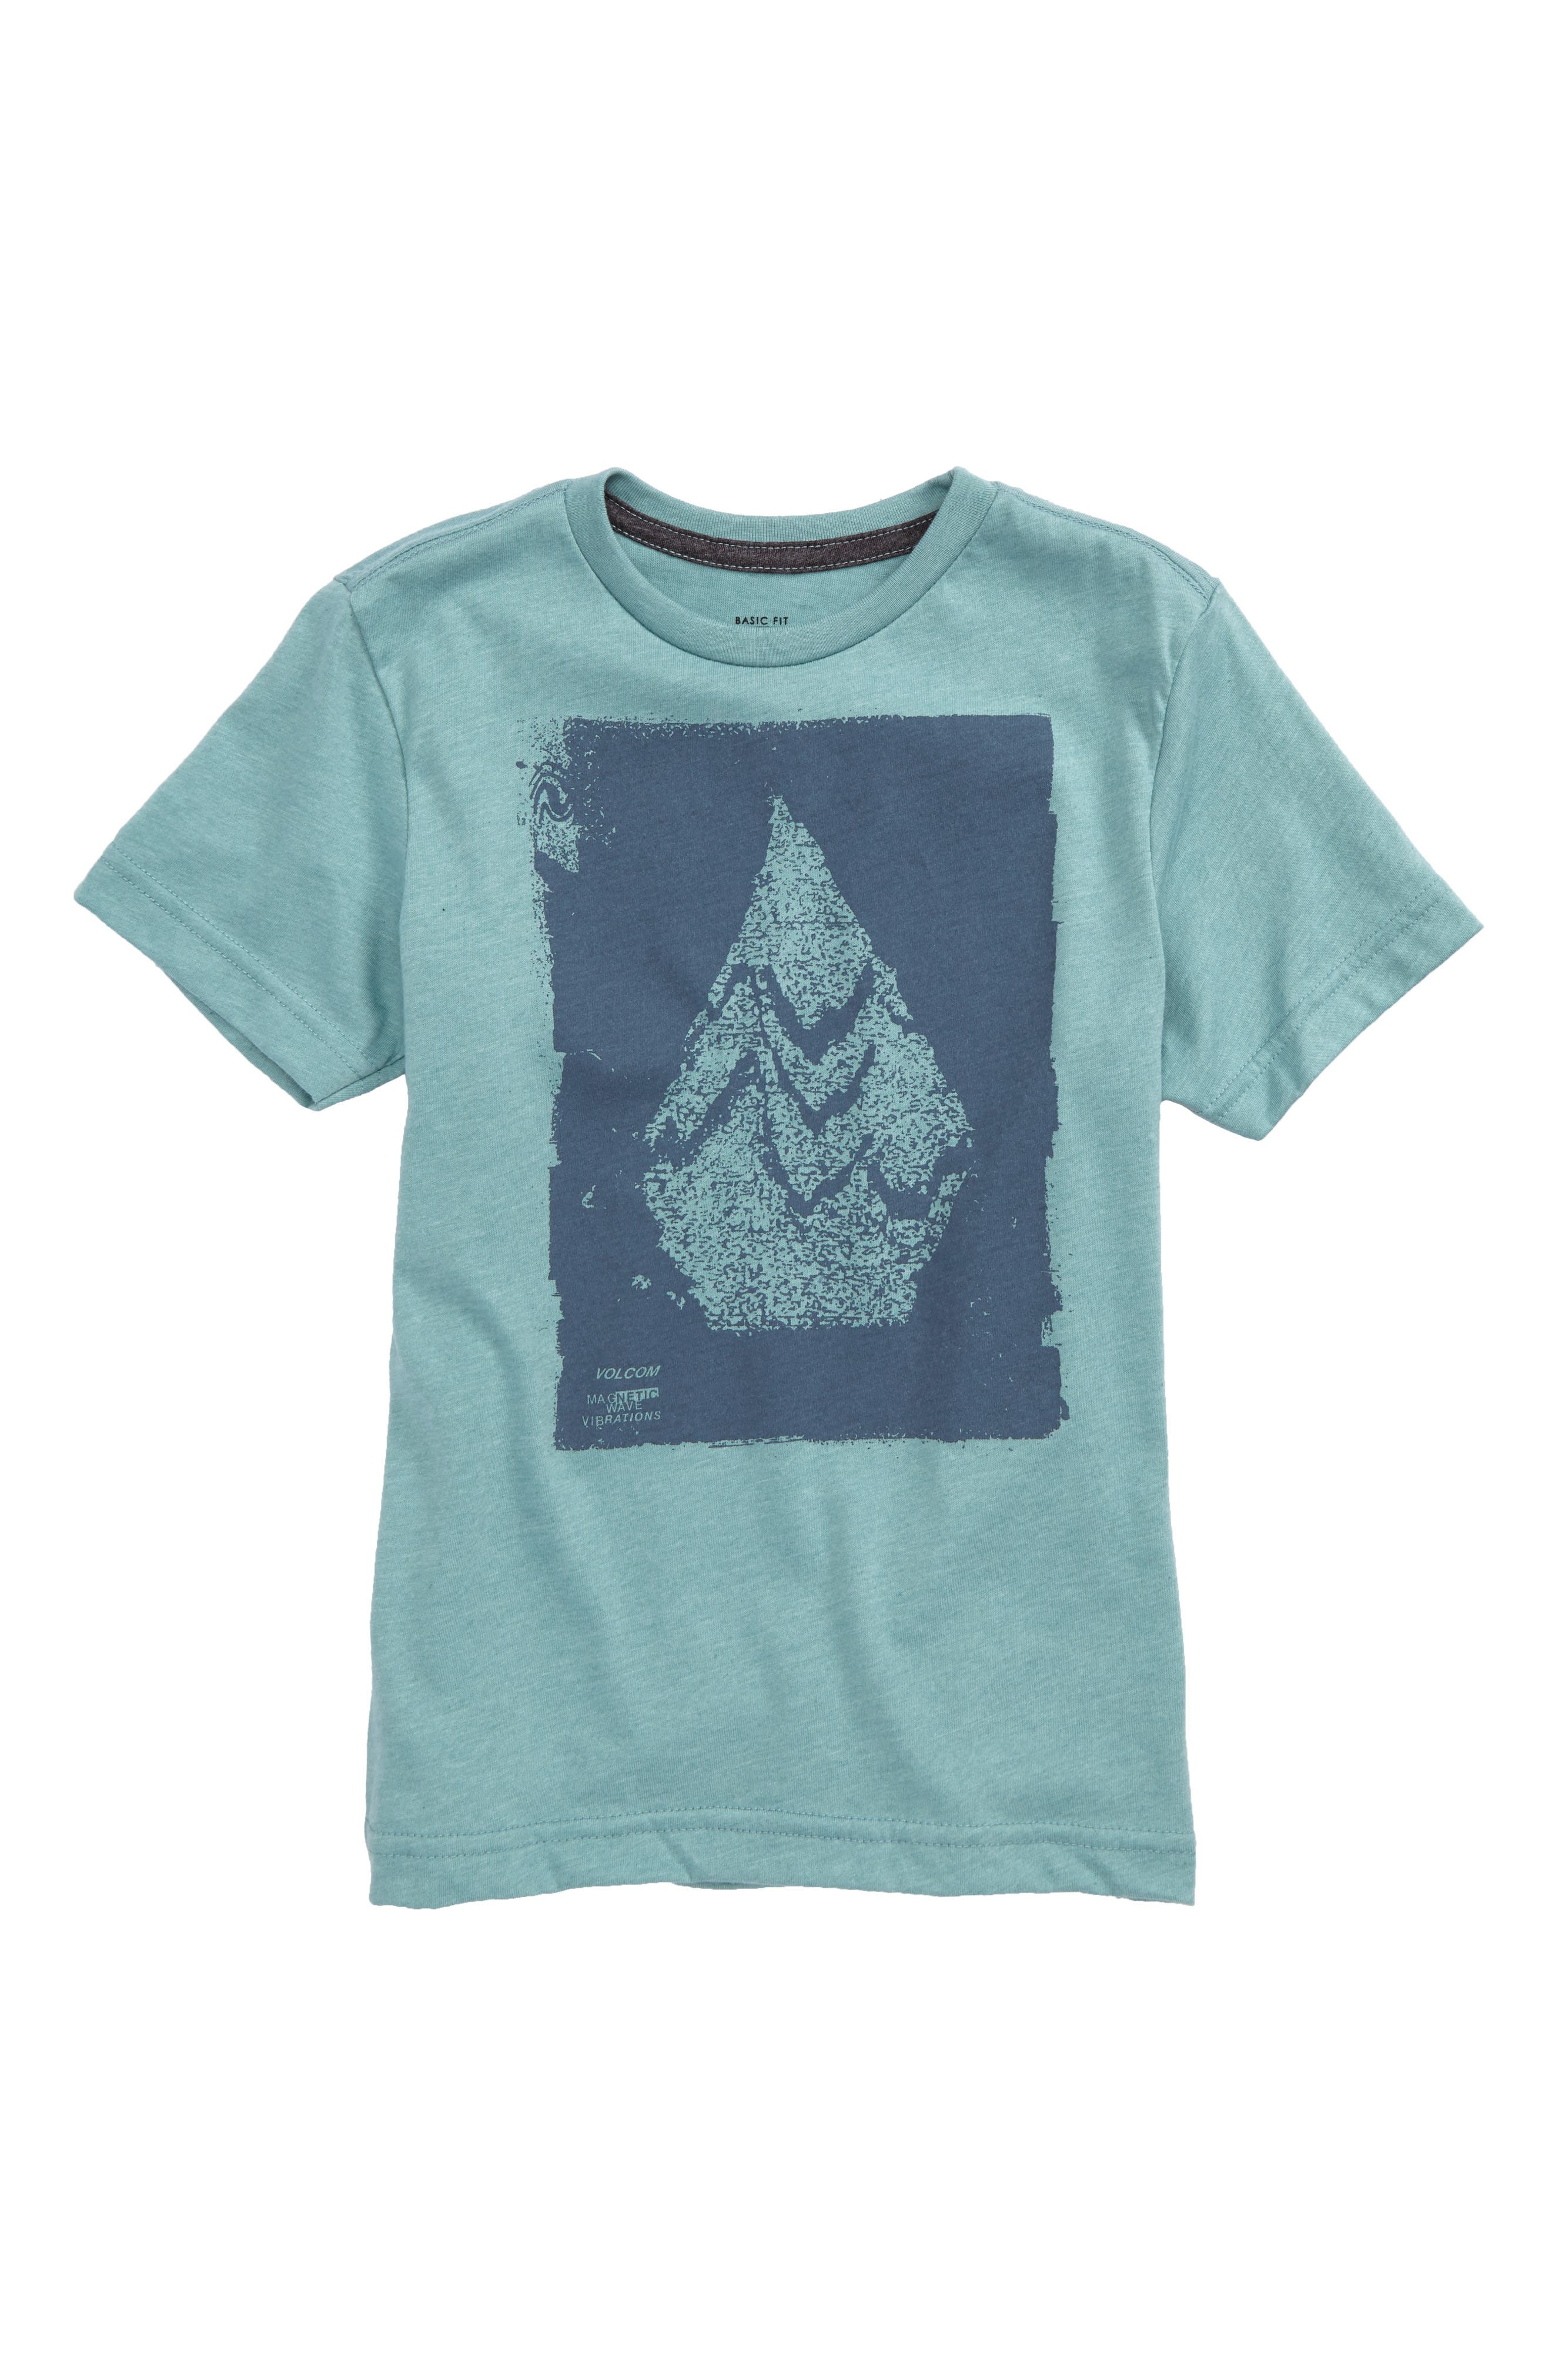 Disruption Graphic Shirt,                         Main,                         color, Sea Blue